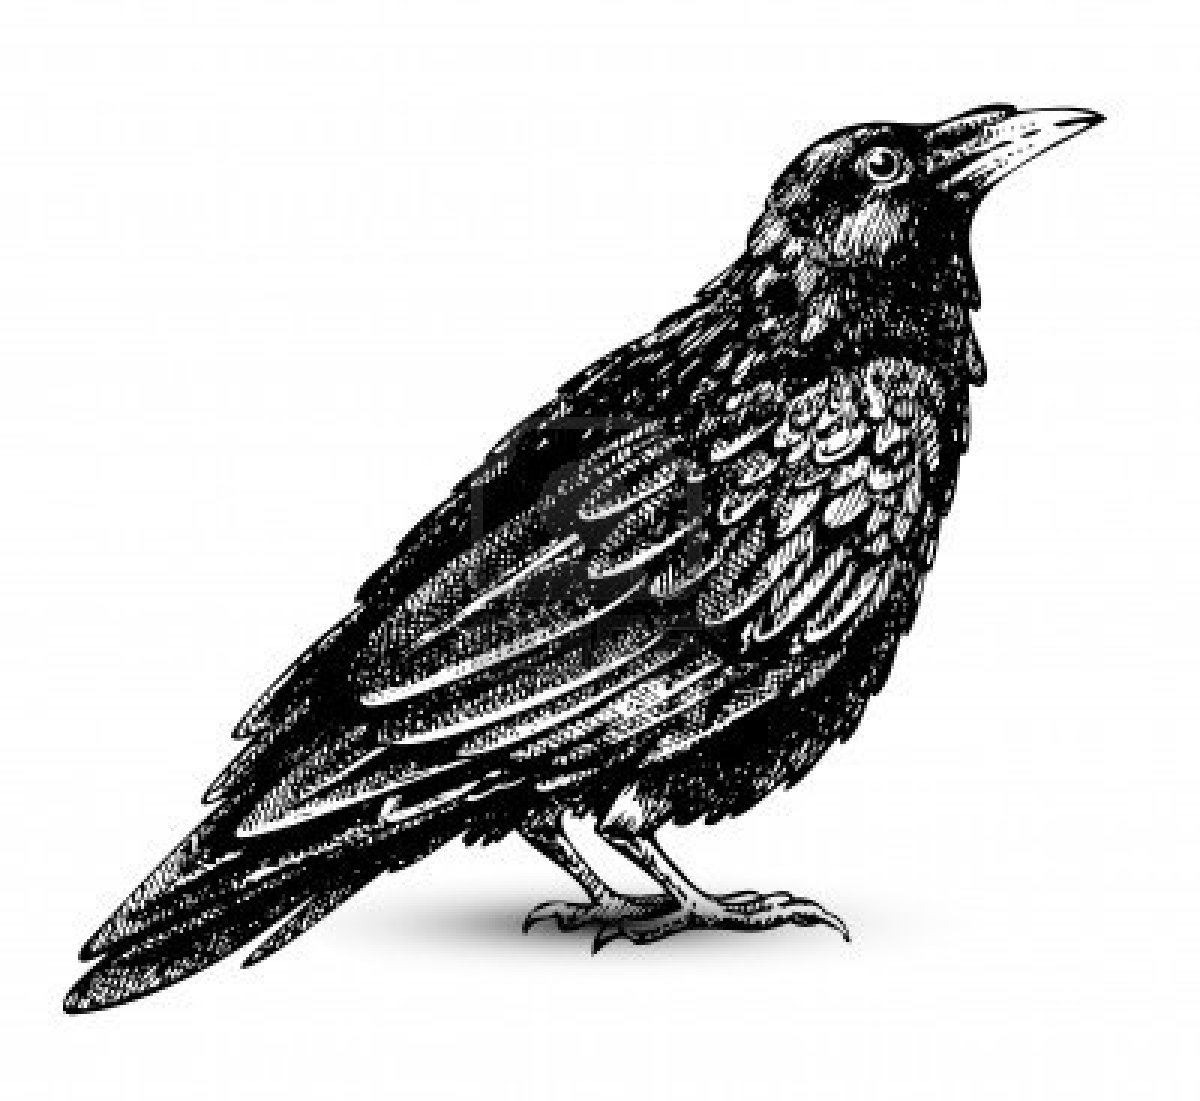 Raven clipart #5, Download drawings